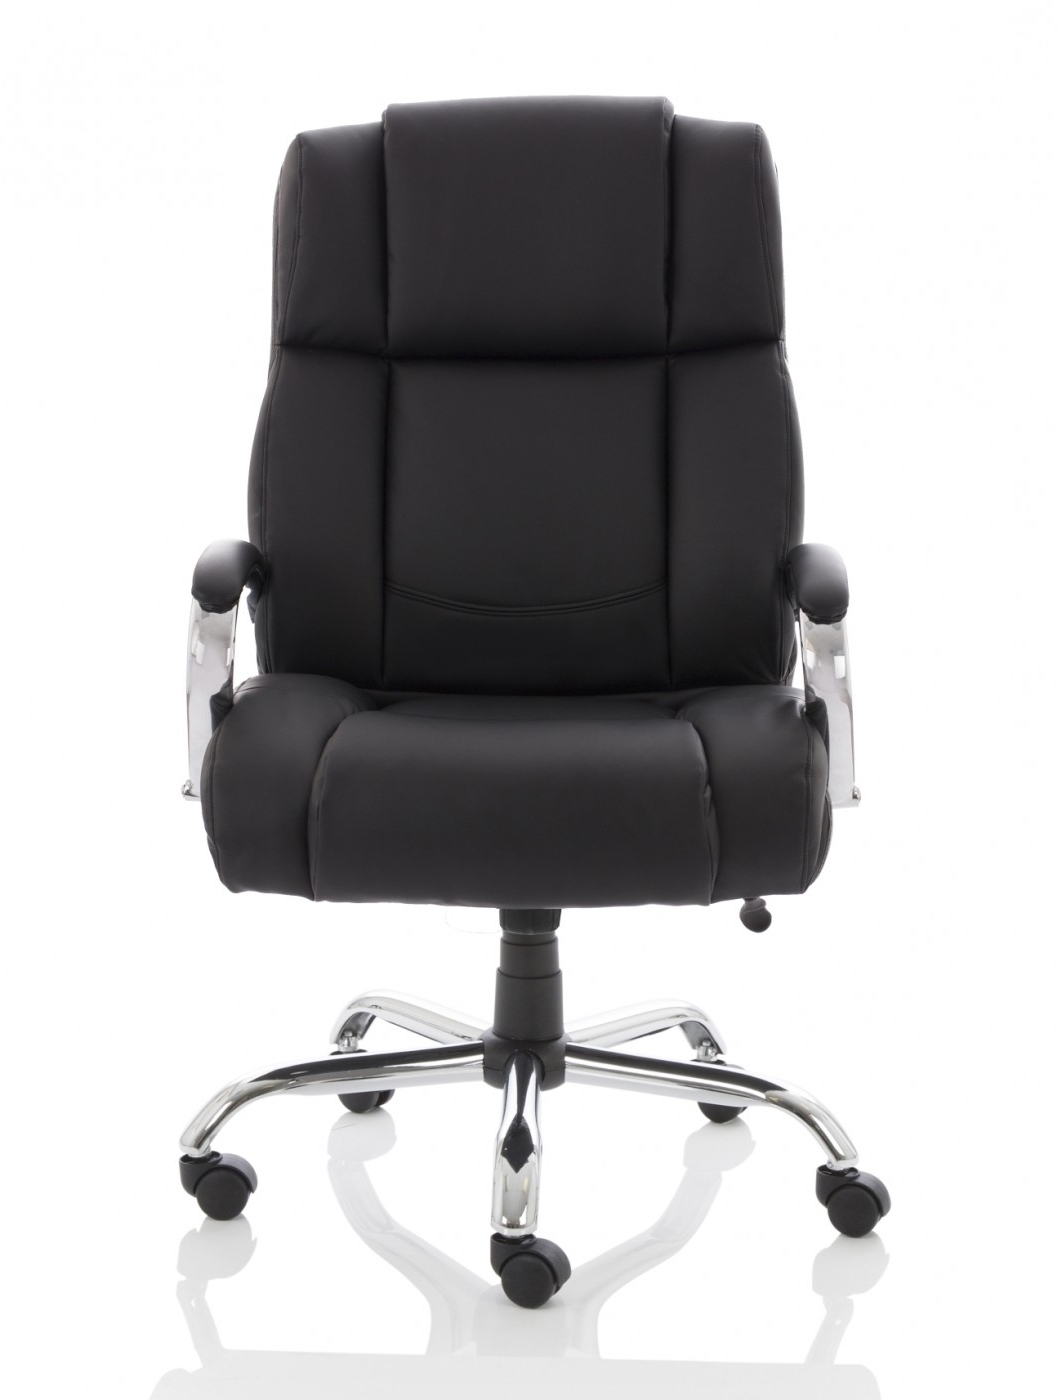 Widely Used Chair : Traditional Executive Leather Office Chair Used Executive Regarding Verona Cream Executive Leather Office Chairs (View 17 of 20)